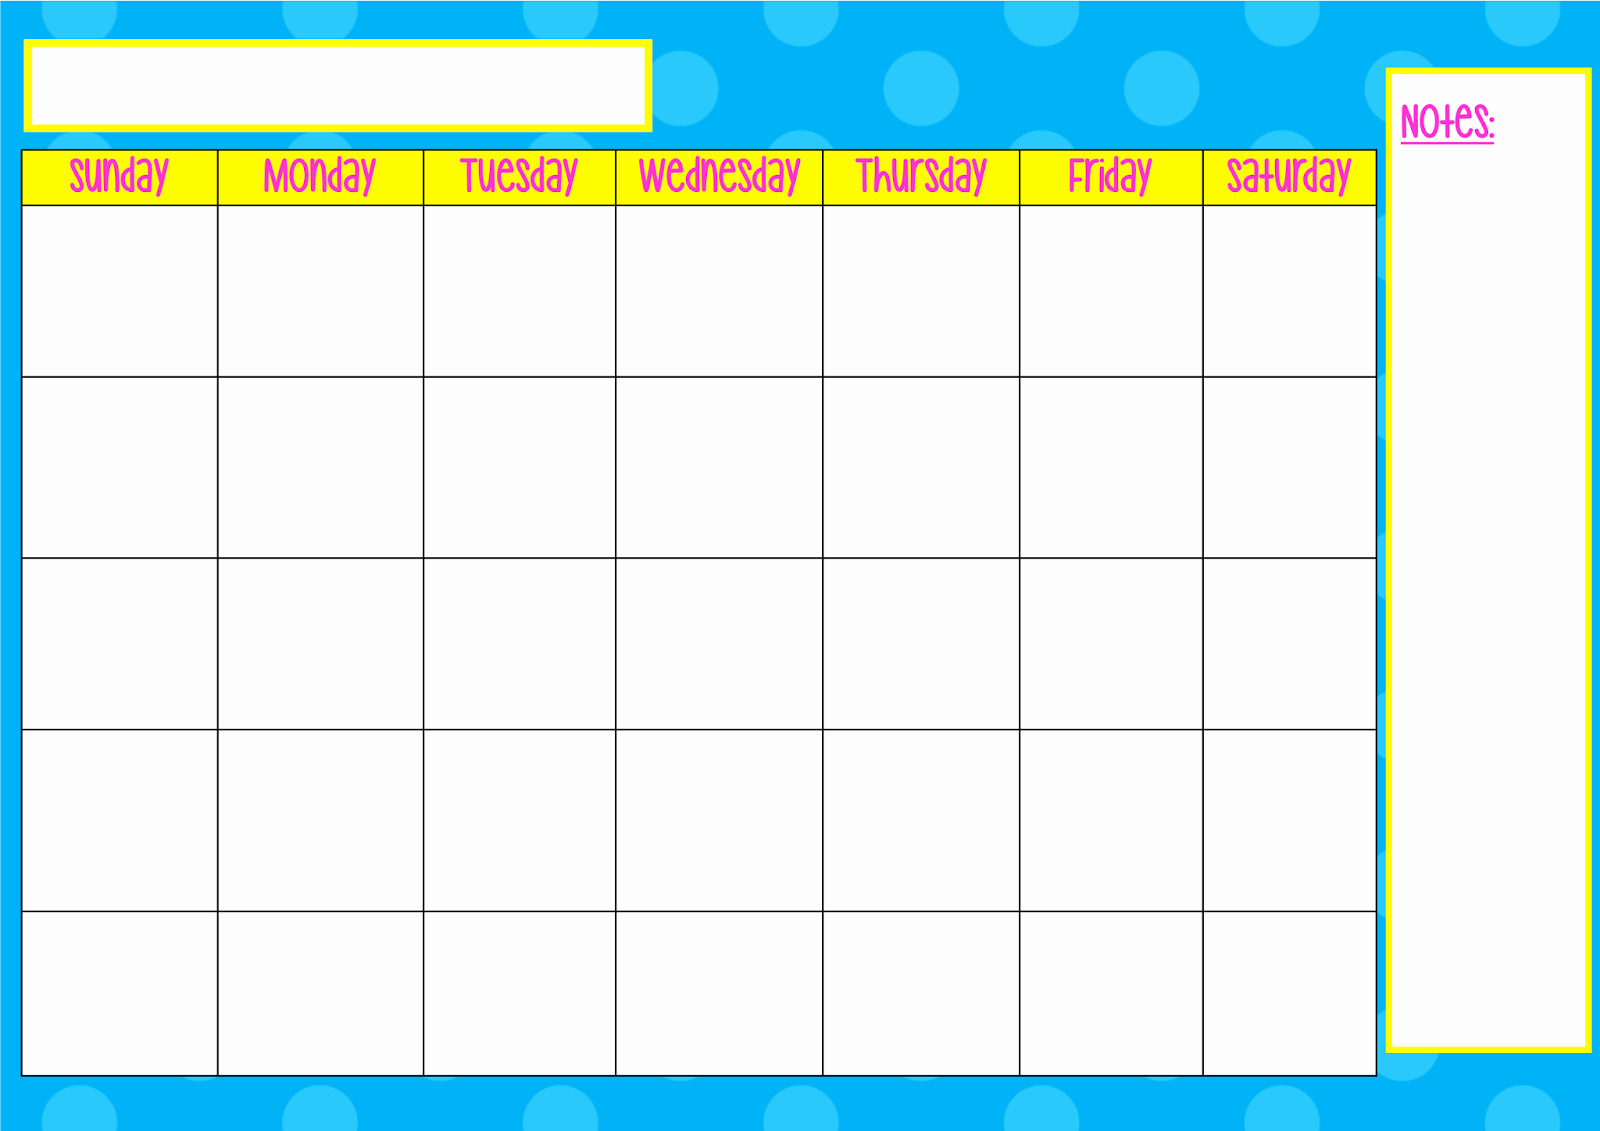 Monday to Friday Schedule Template Unique Printable Monday Through Friday Calendar Template